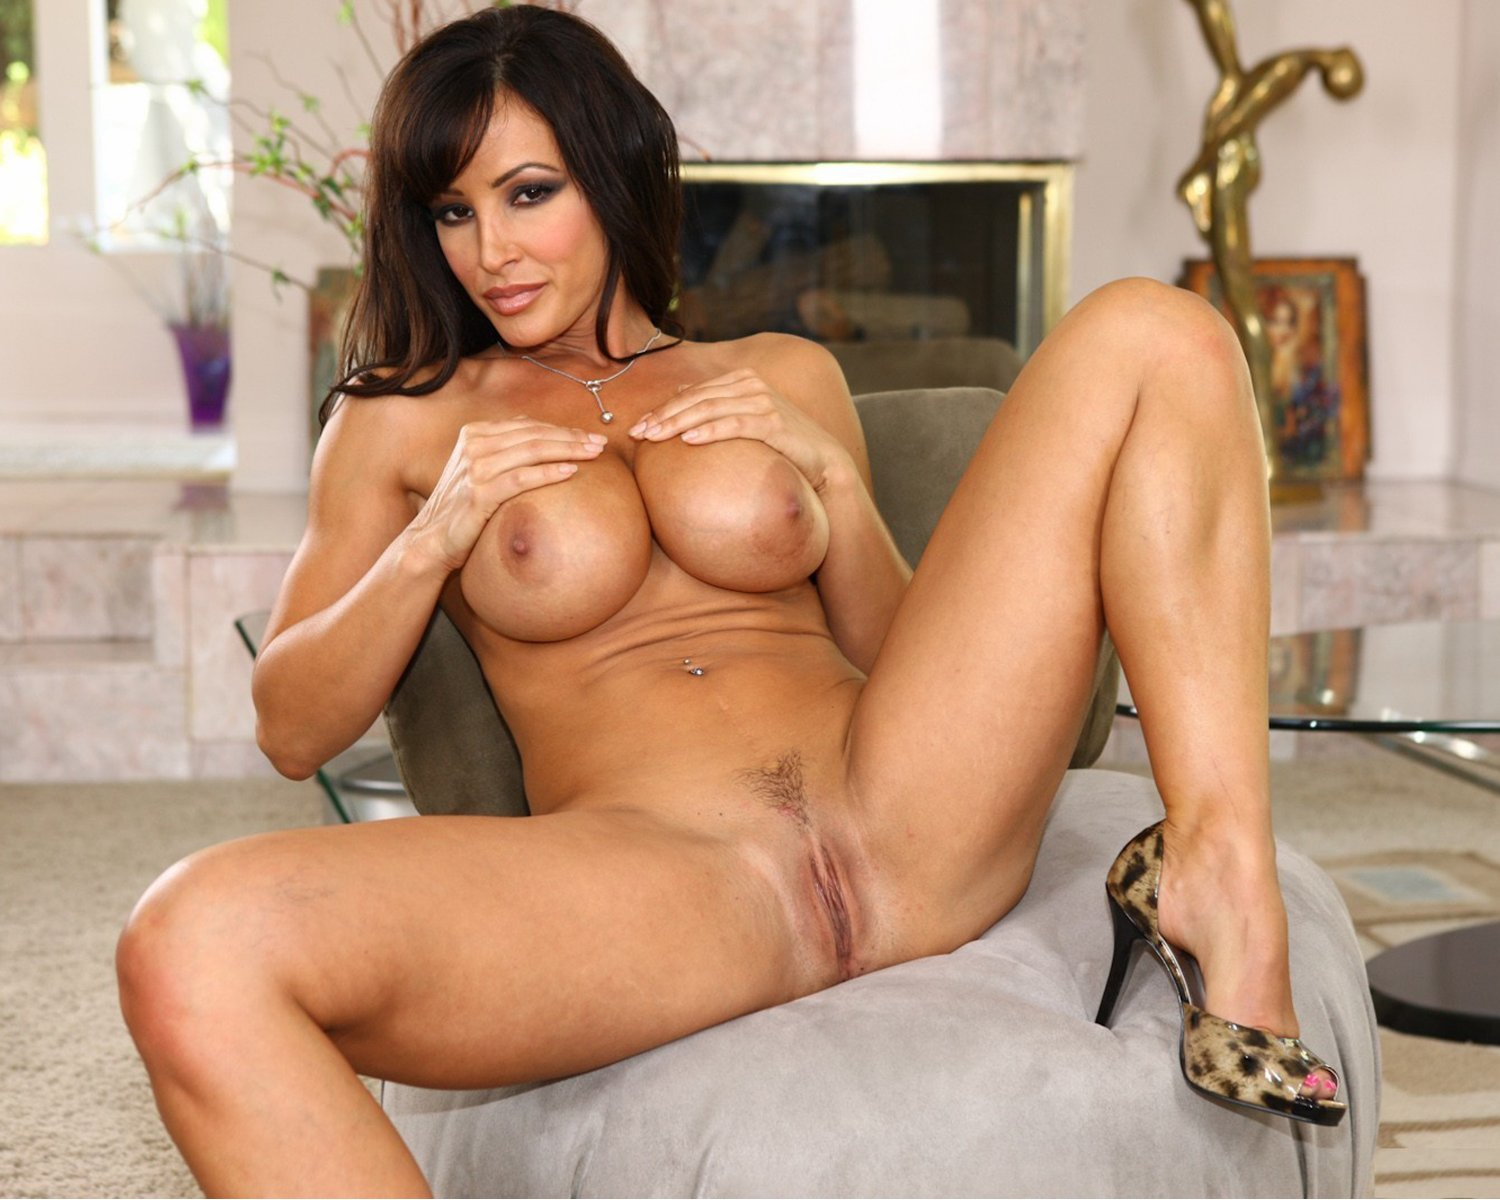 Lisa ann naked pics, porn anime in magavideo